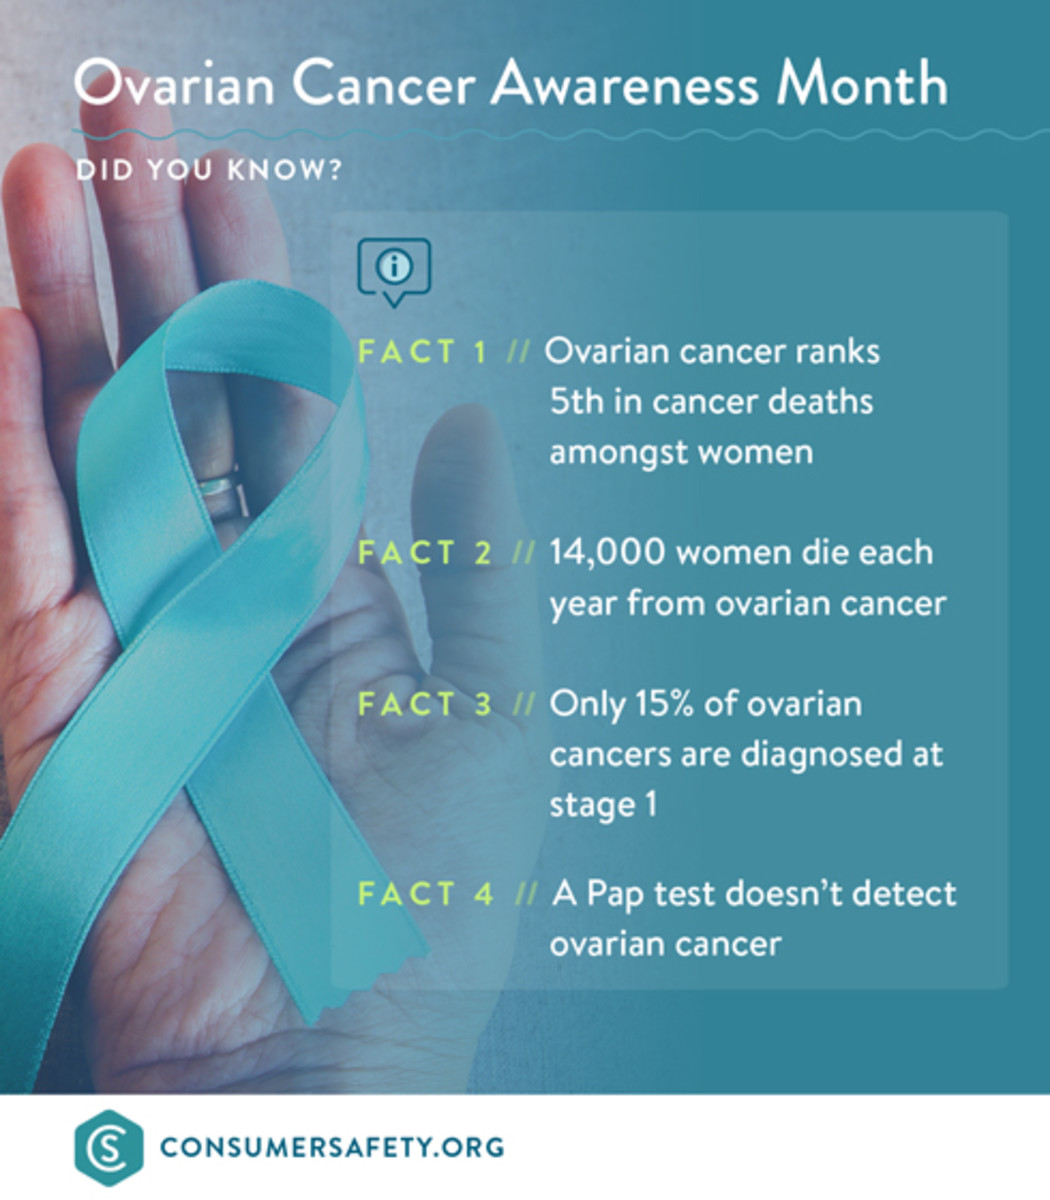 OvarianCancerFacts